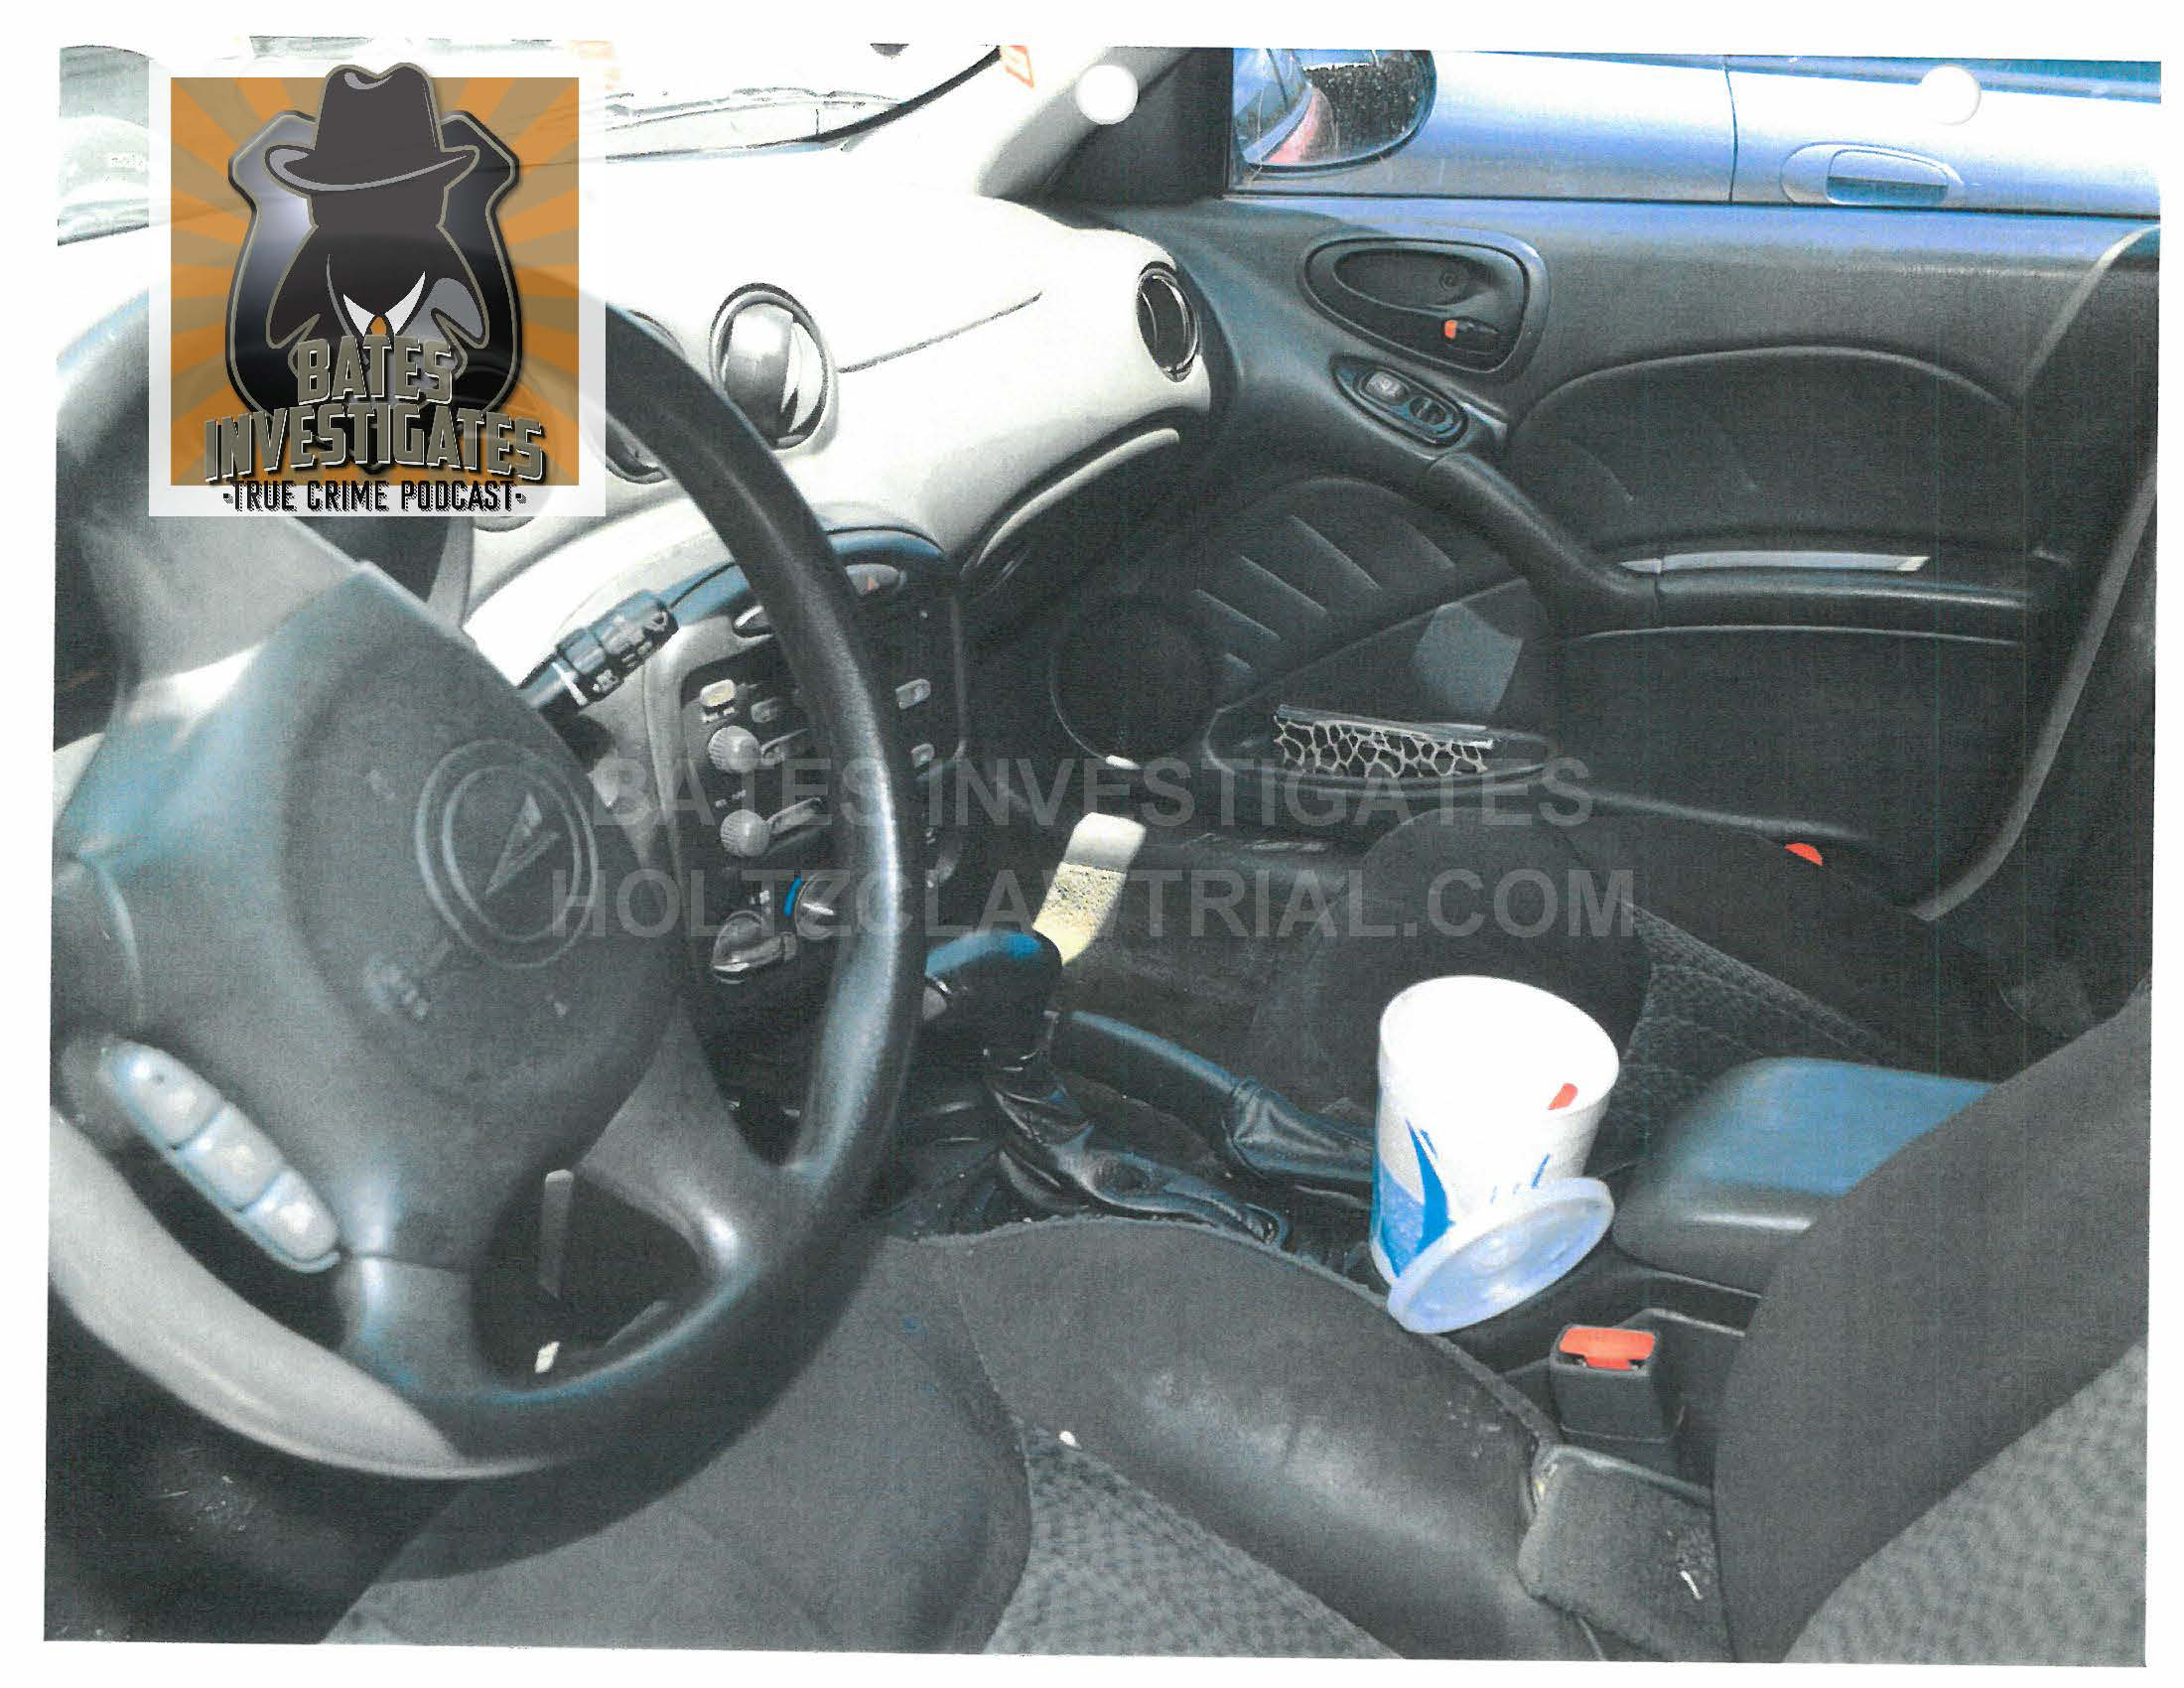 Holtzclaw Podcast Ep02 - Ligons Car - Watermarked_Page_19.jpg